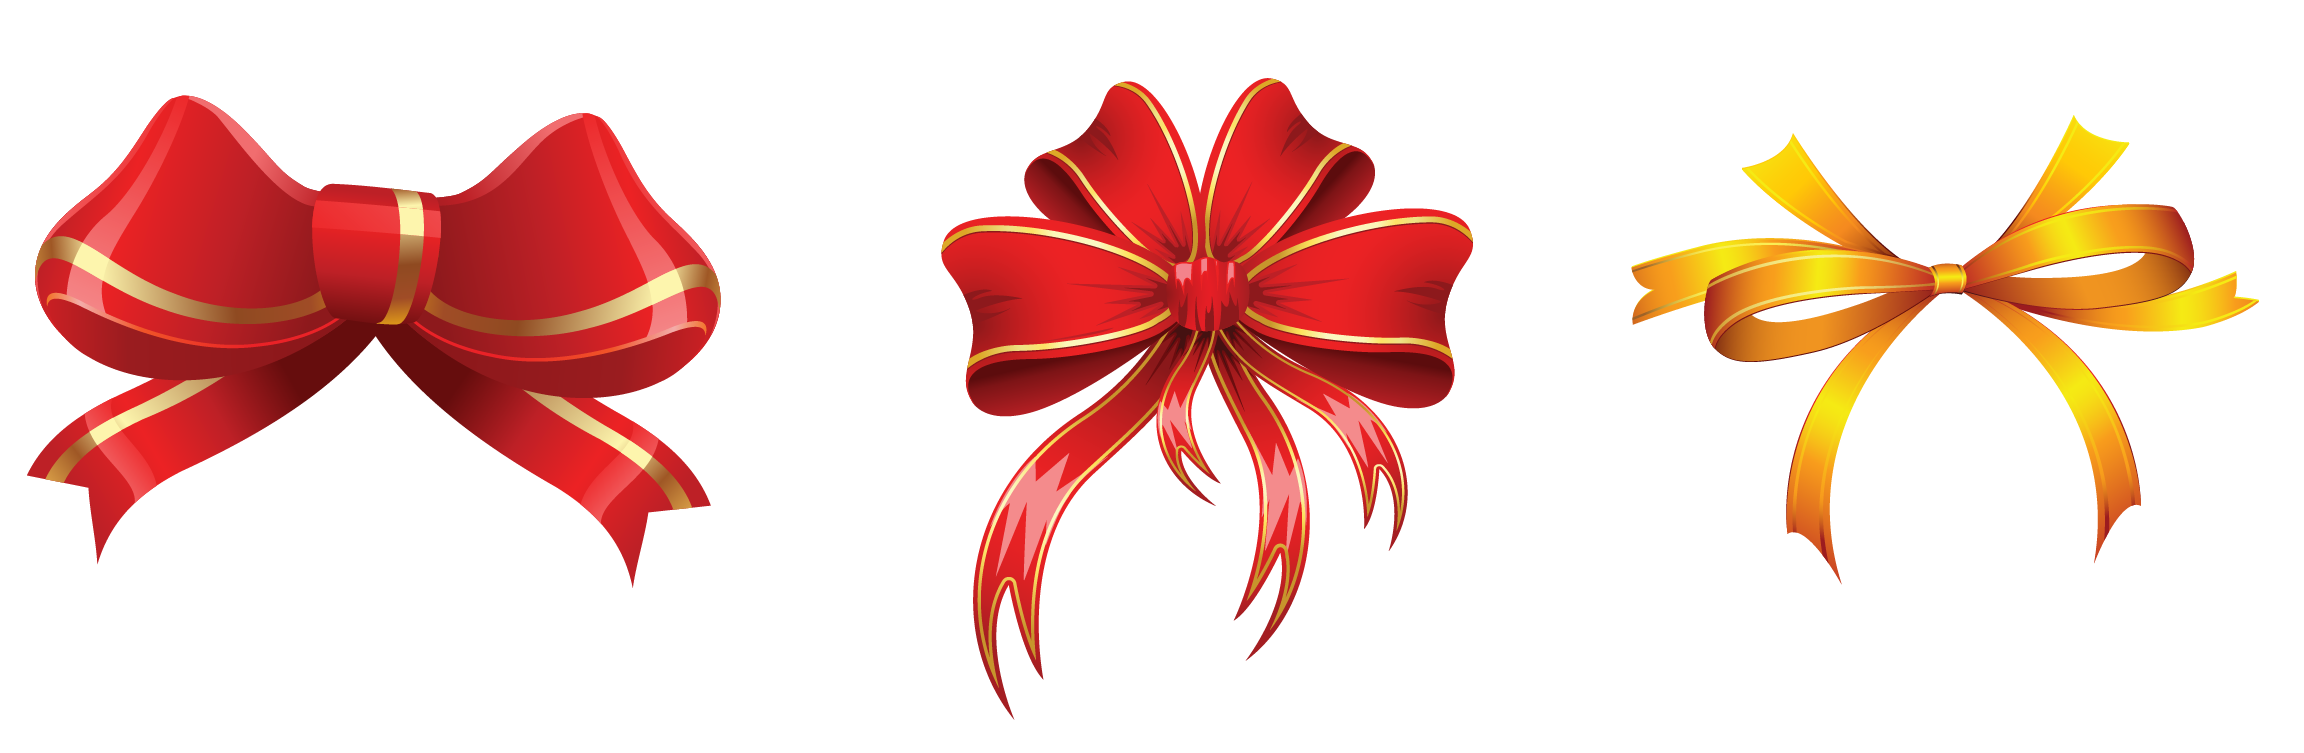 Flower decorations clipart graphic free Gold and Red Bows Decorations PNG Clipart Picture | Gallery ... graphic free